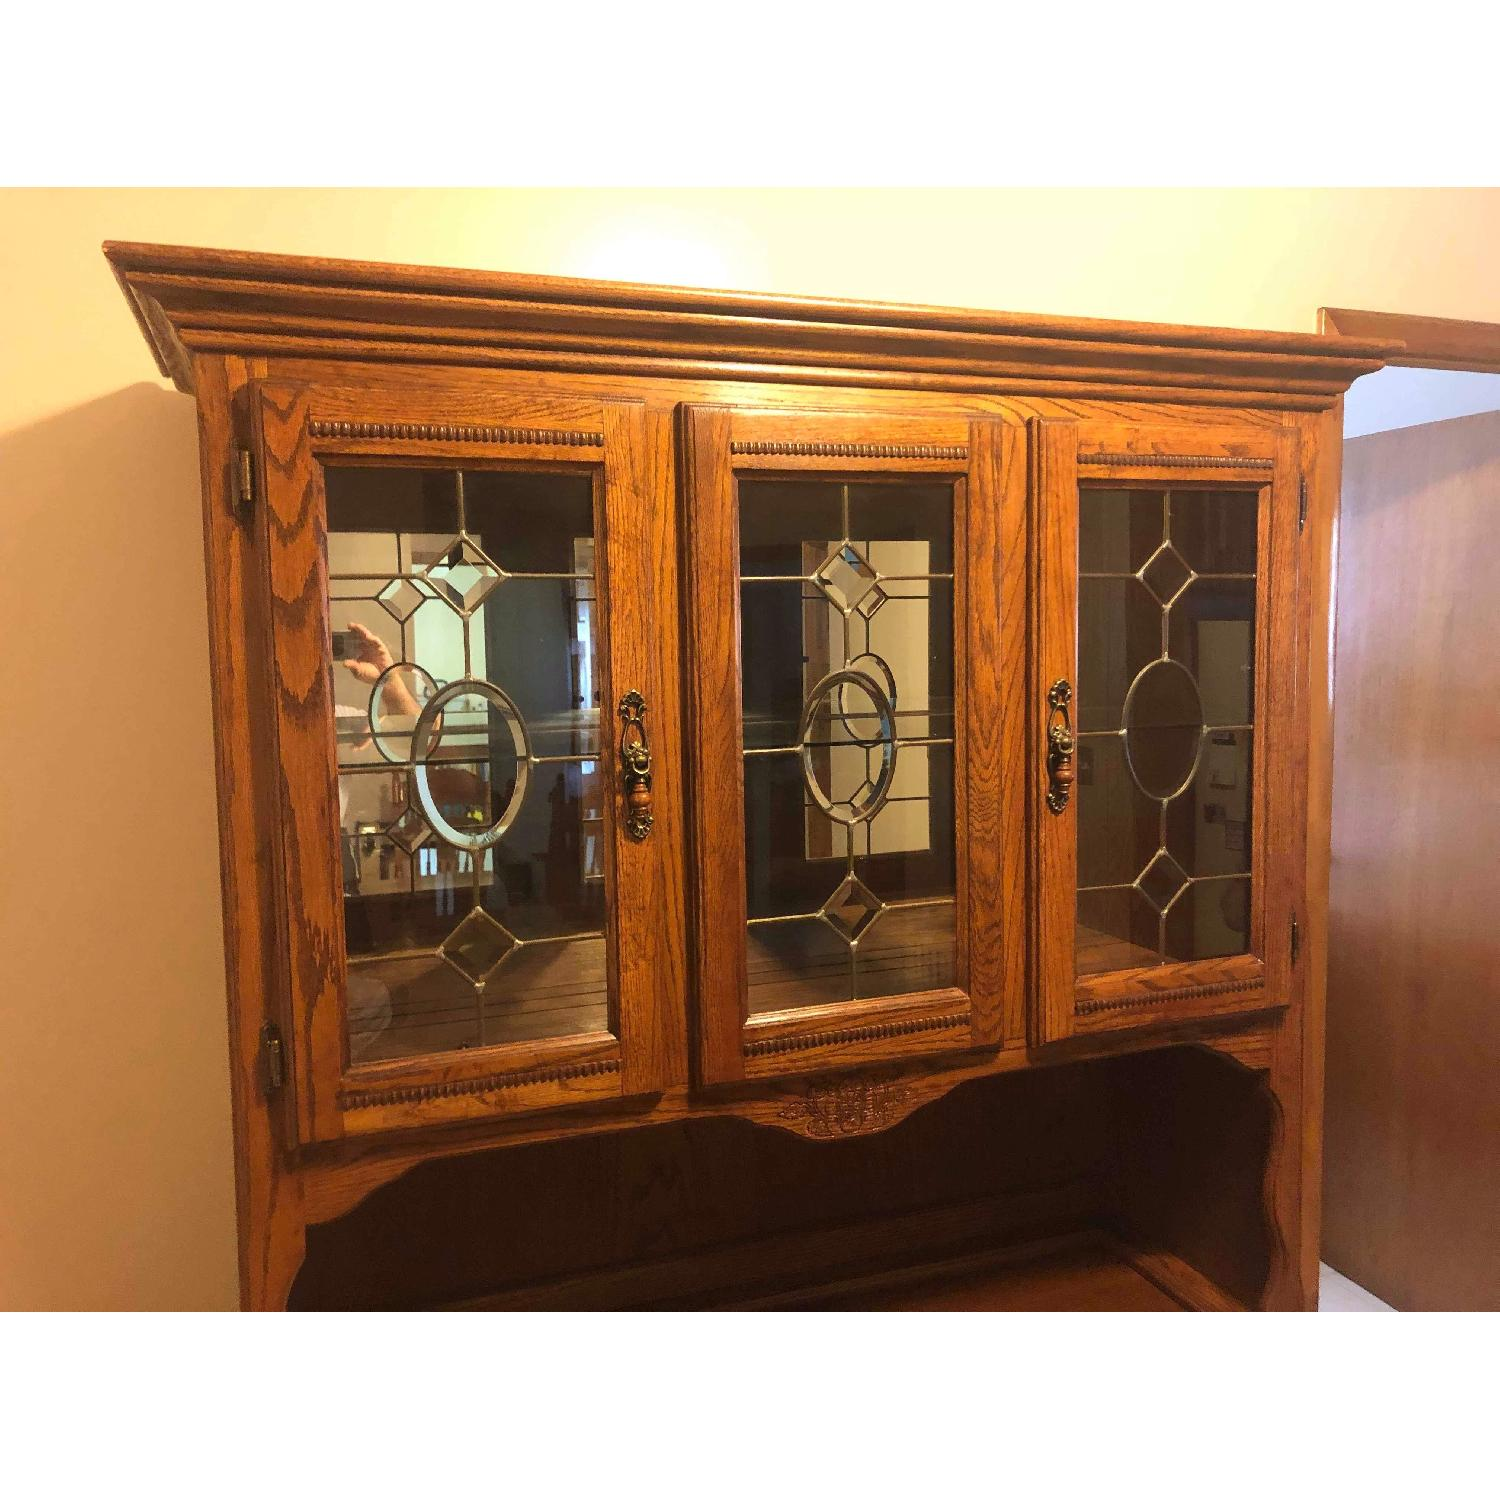 Solid Wood Early American Style Hutch w/ Lights - image-13